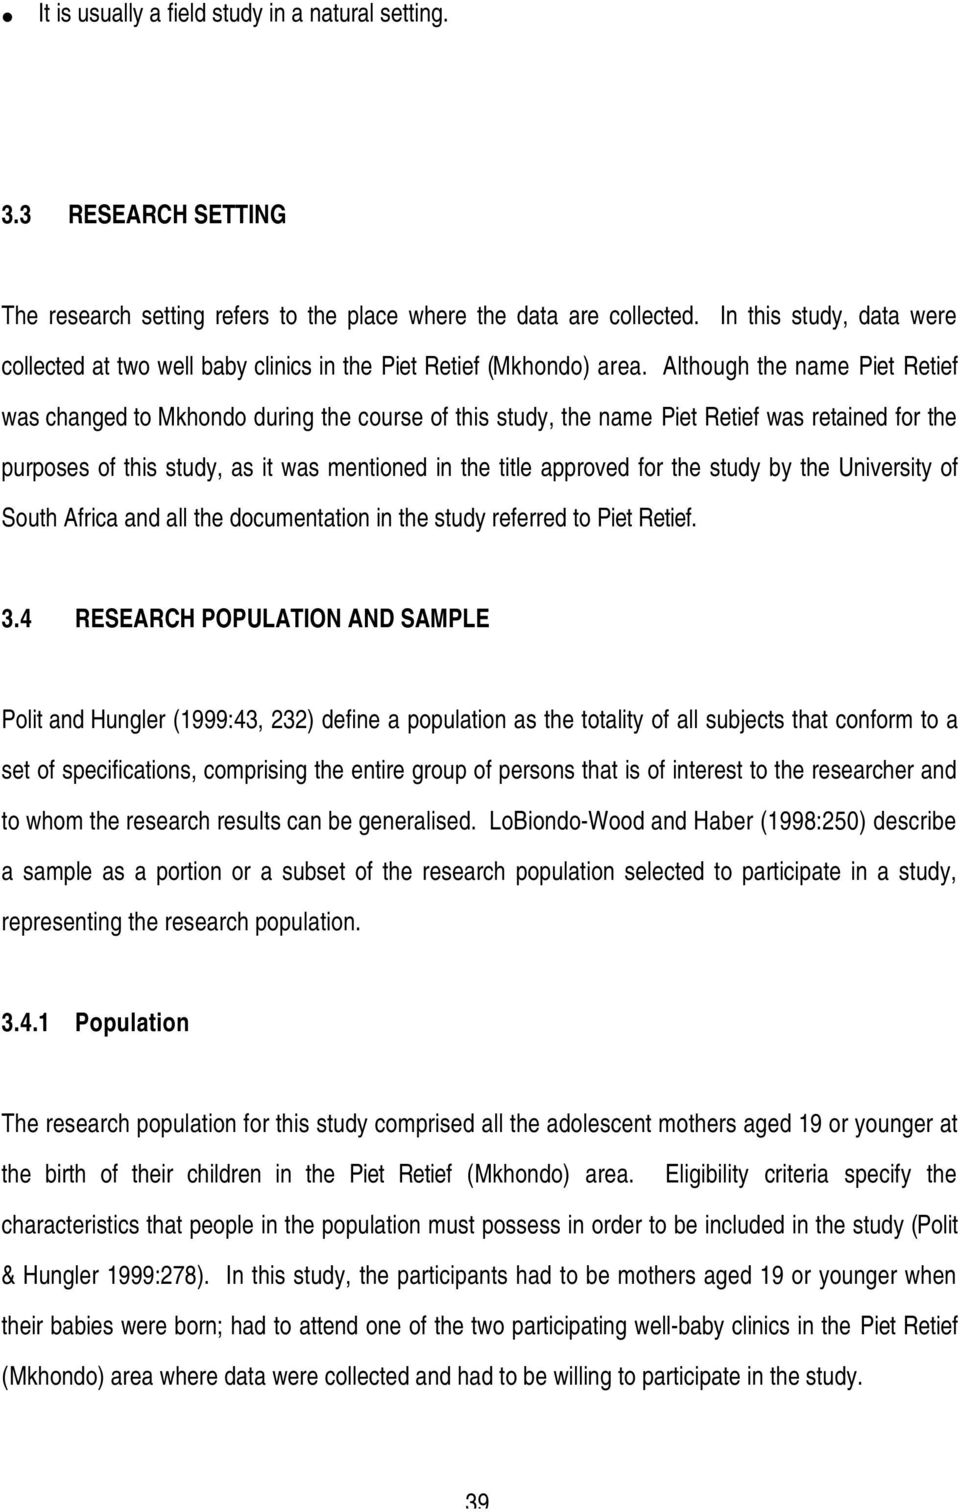 Chapter 1. Introduction and research approach | precision.